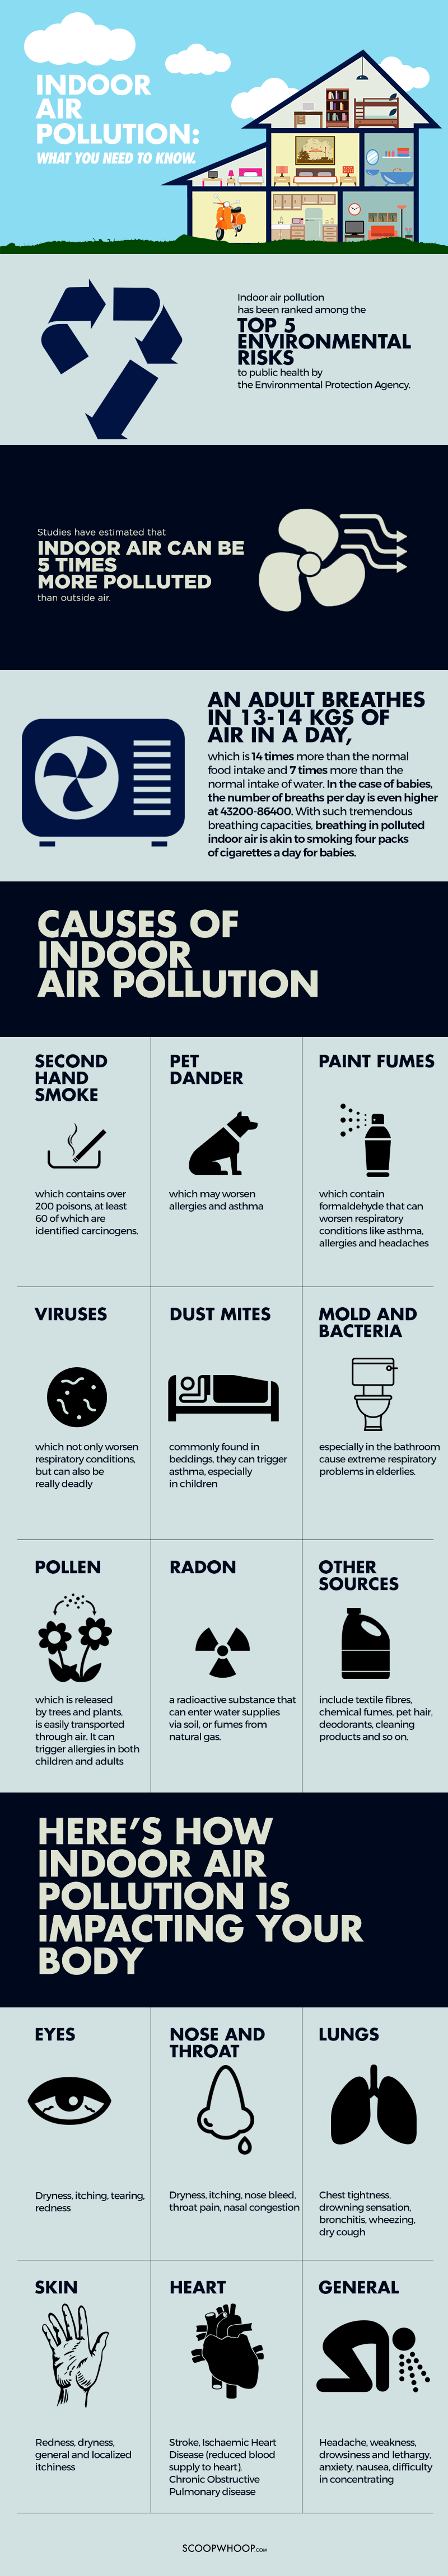 infographic-indoor-air-pollution